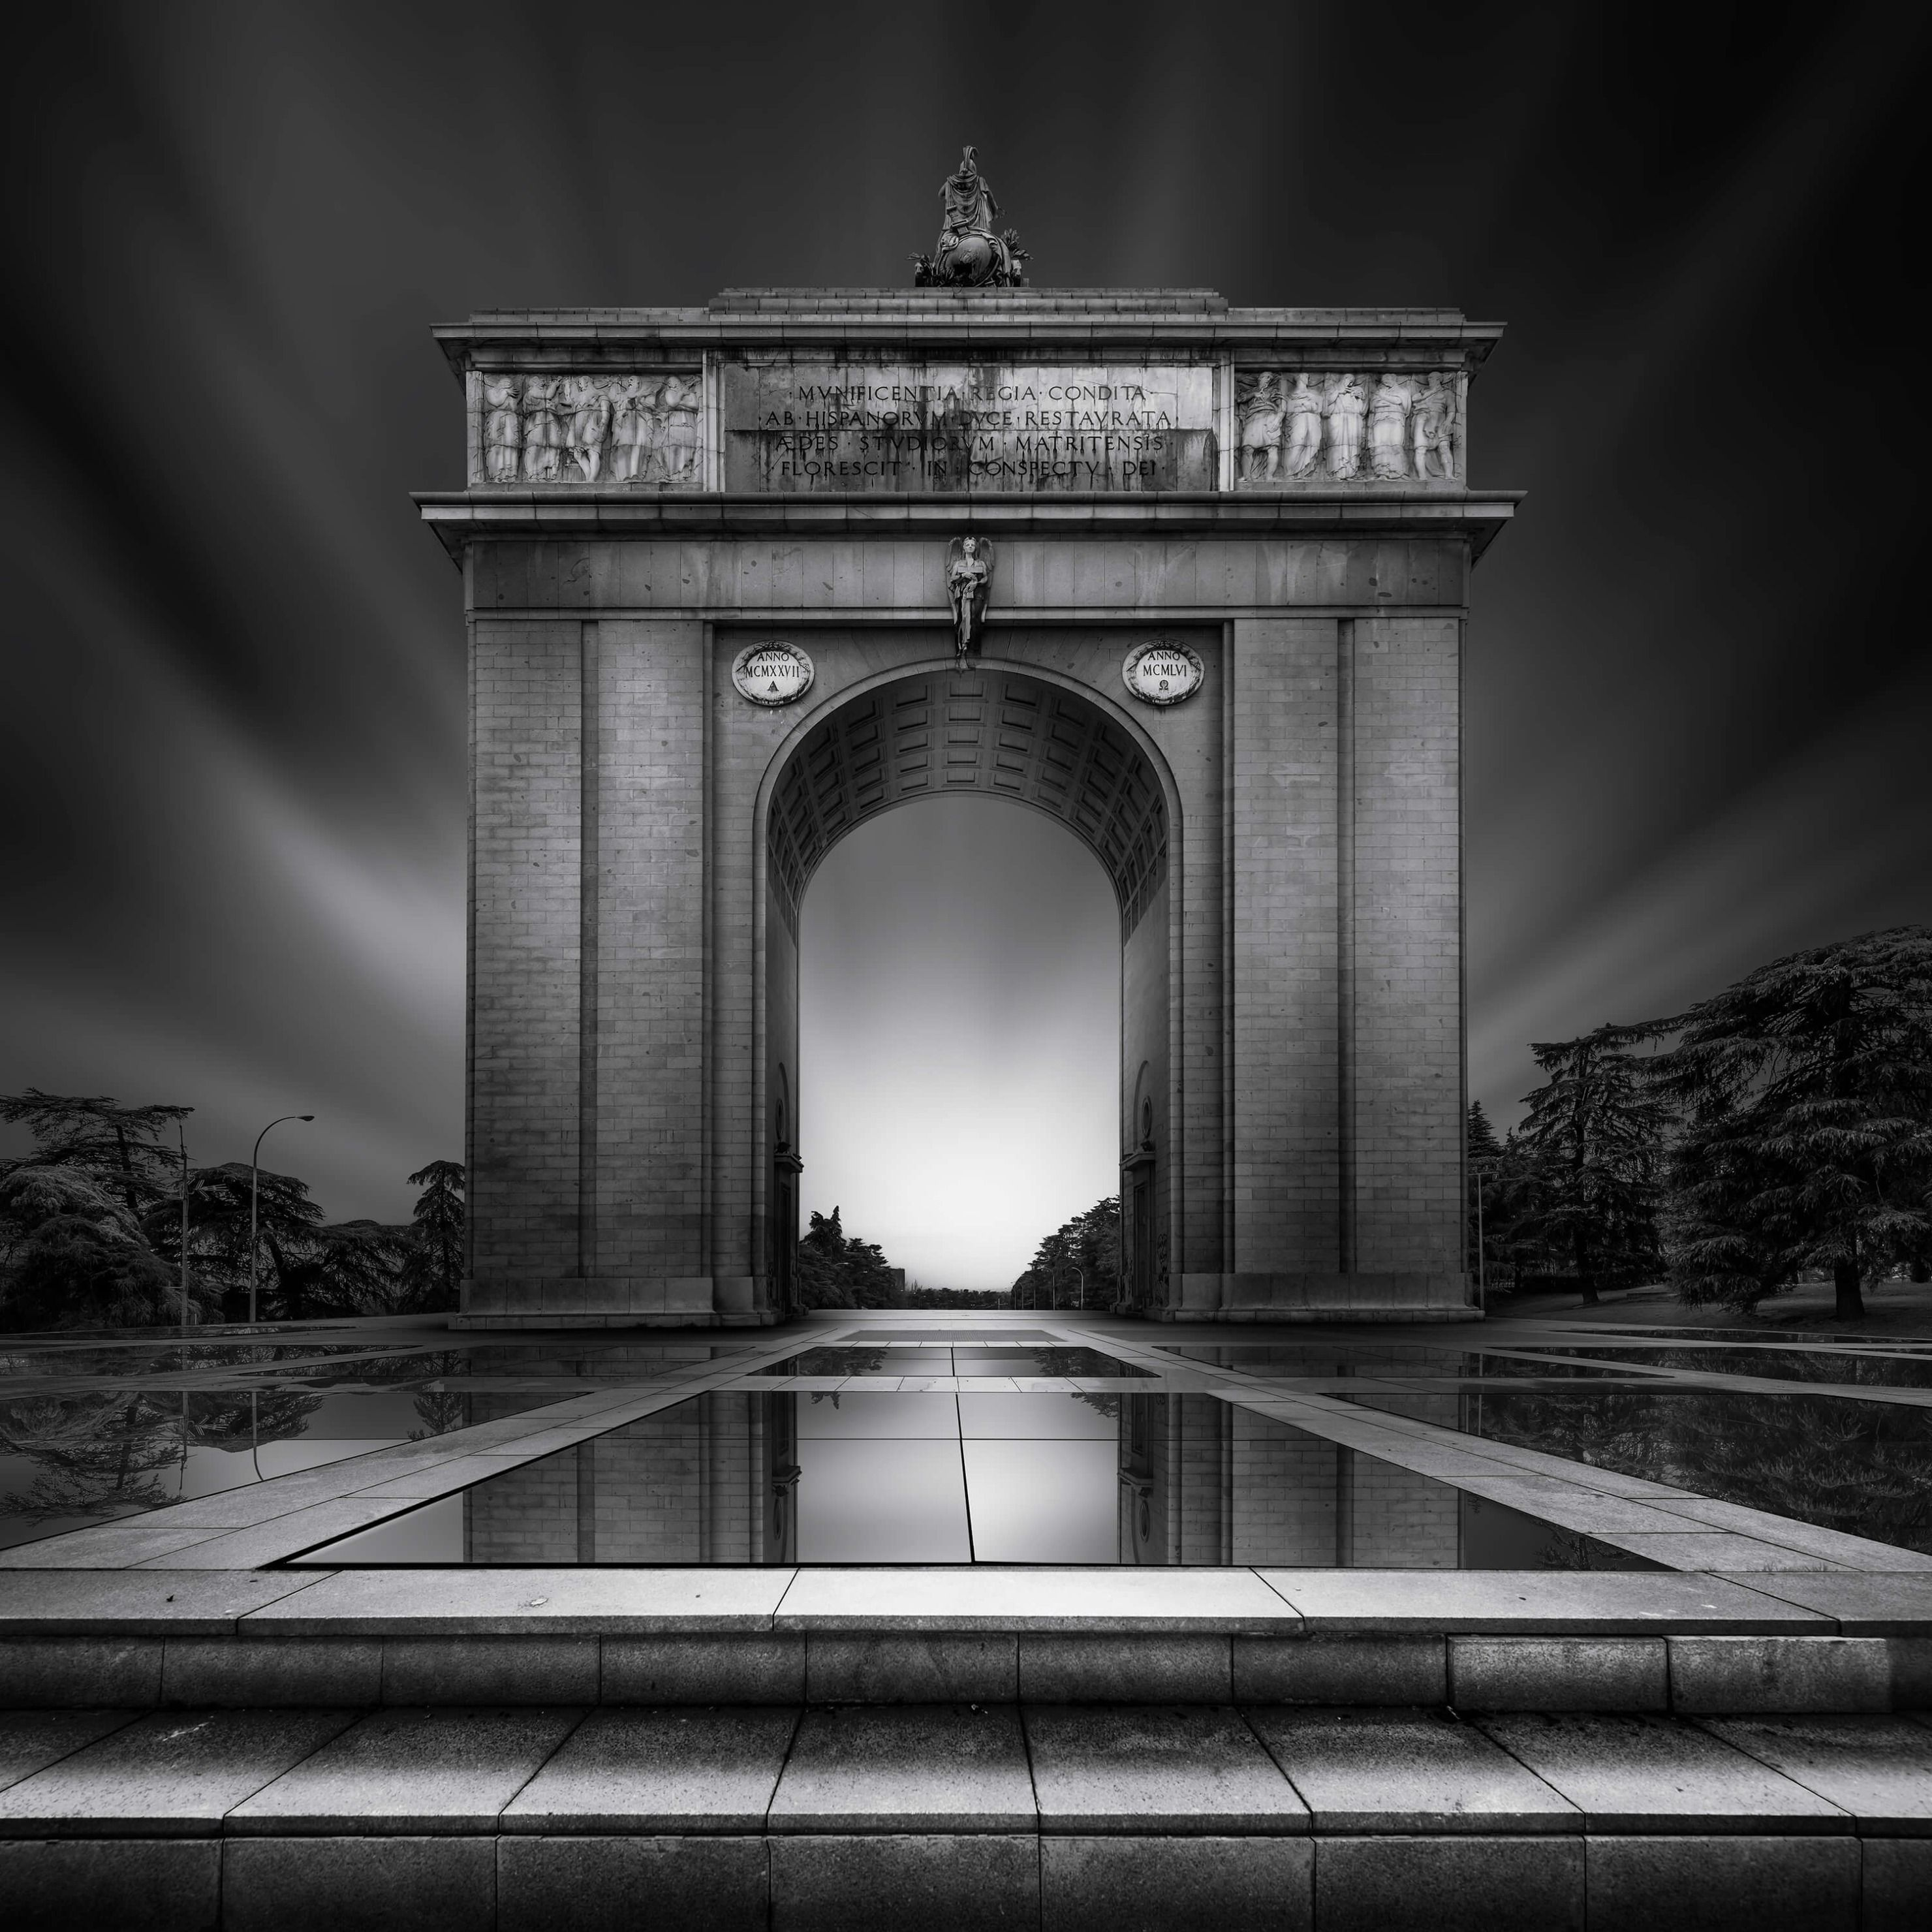 Architecture Arch of Moncloa